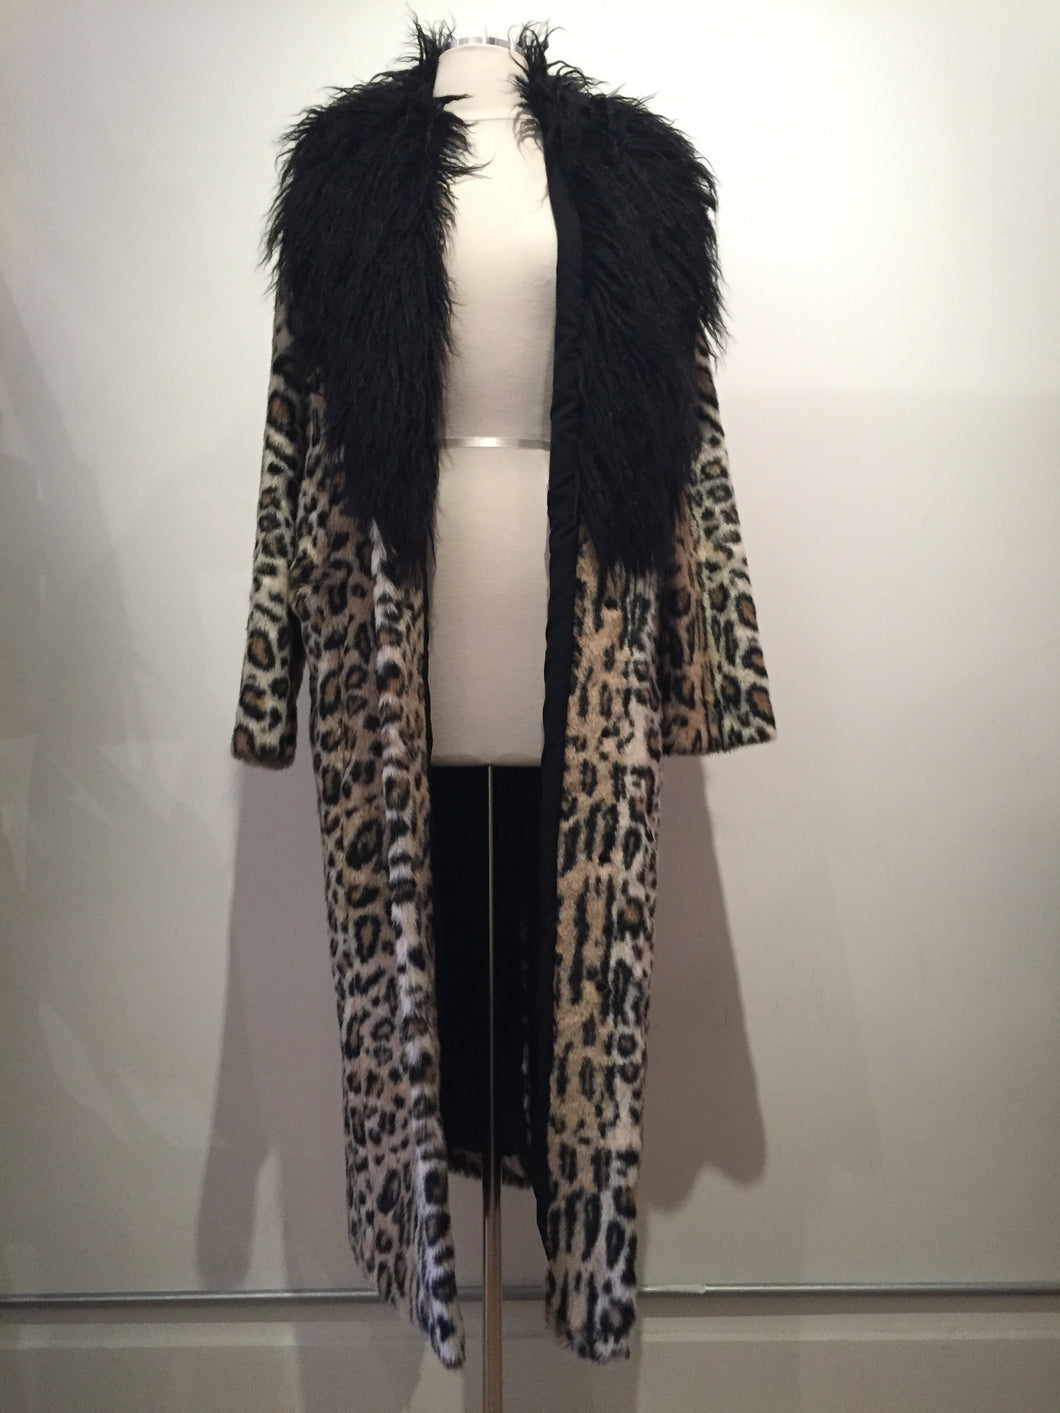 House Of Harlow x Revolve 1960 Long Coat Size M